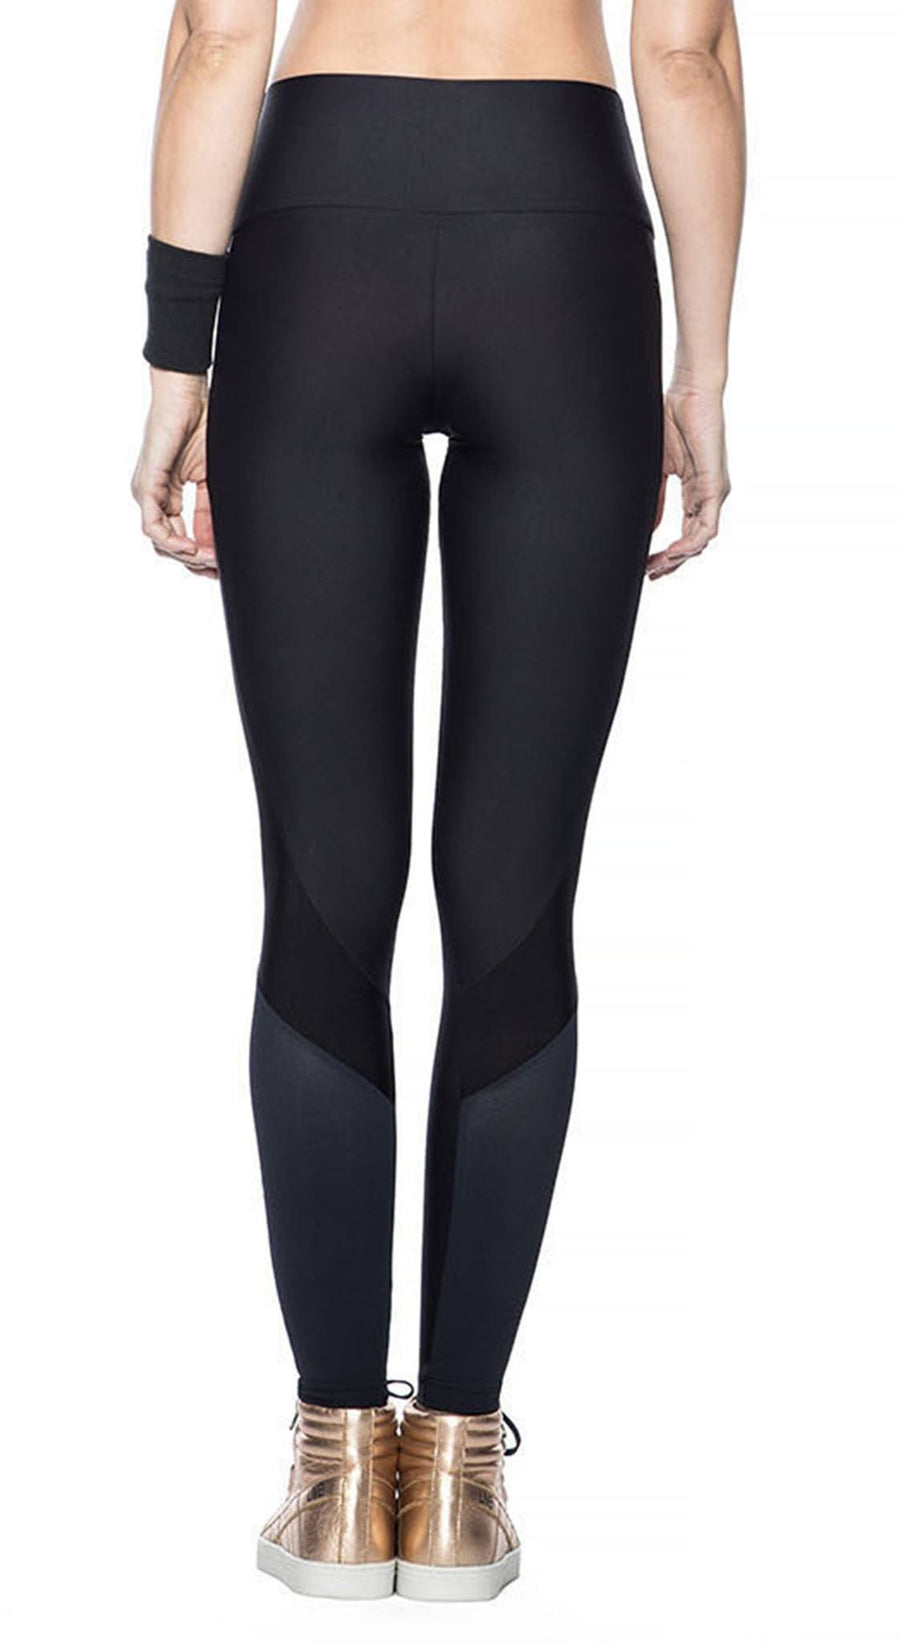 Yoga Pants - Super Style Leggings Black